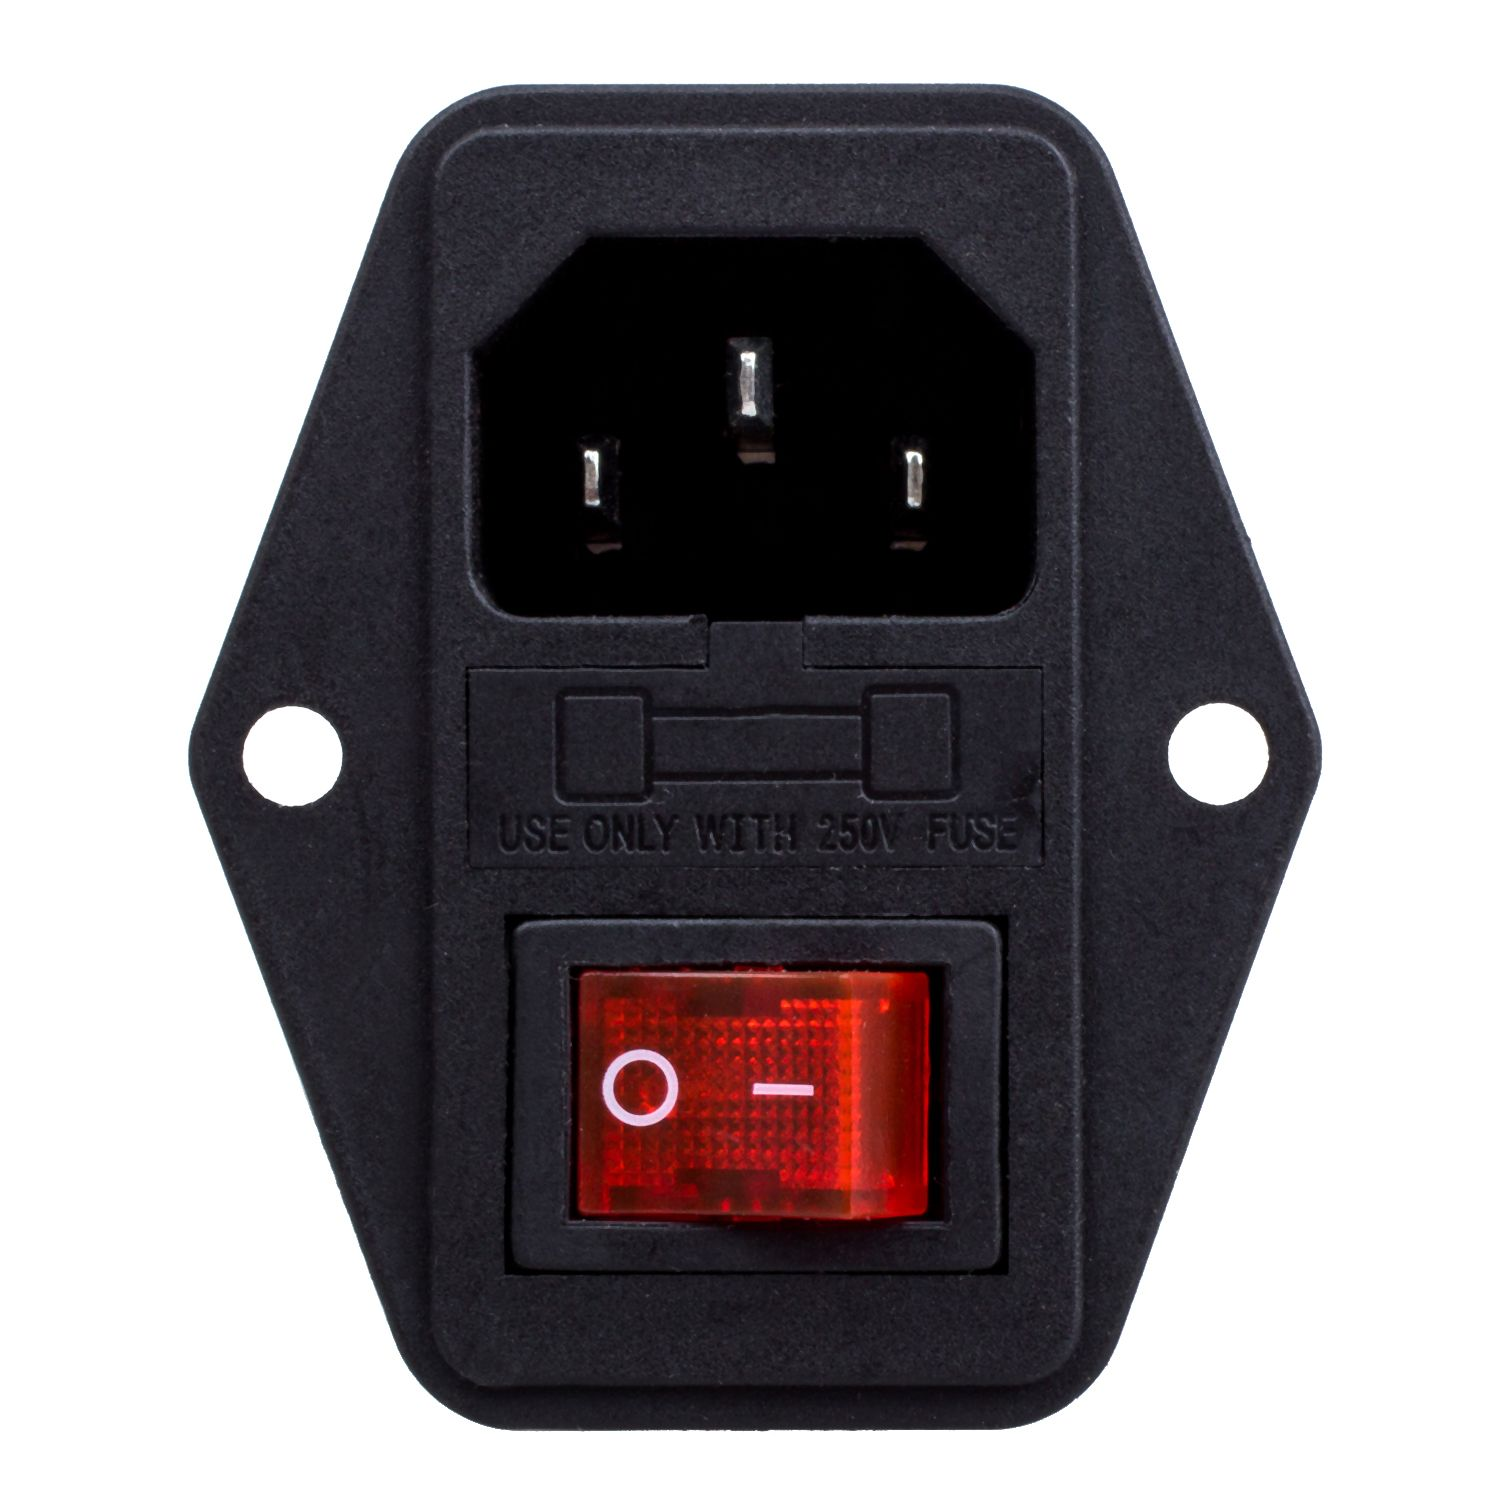 Inlet Module Plug Fuse Switch Male Power Socket 3 Pin Product Name W Material External Plastic Metal Color Red